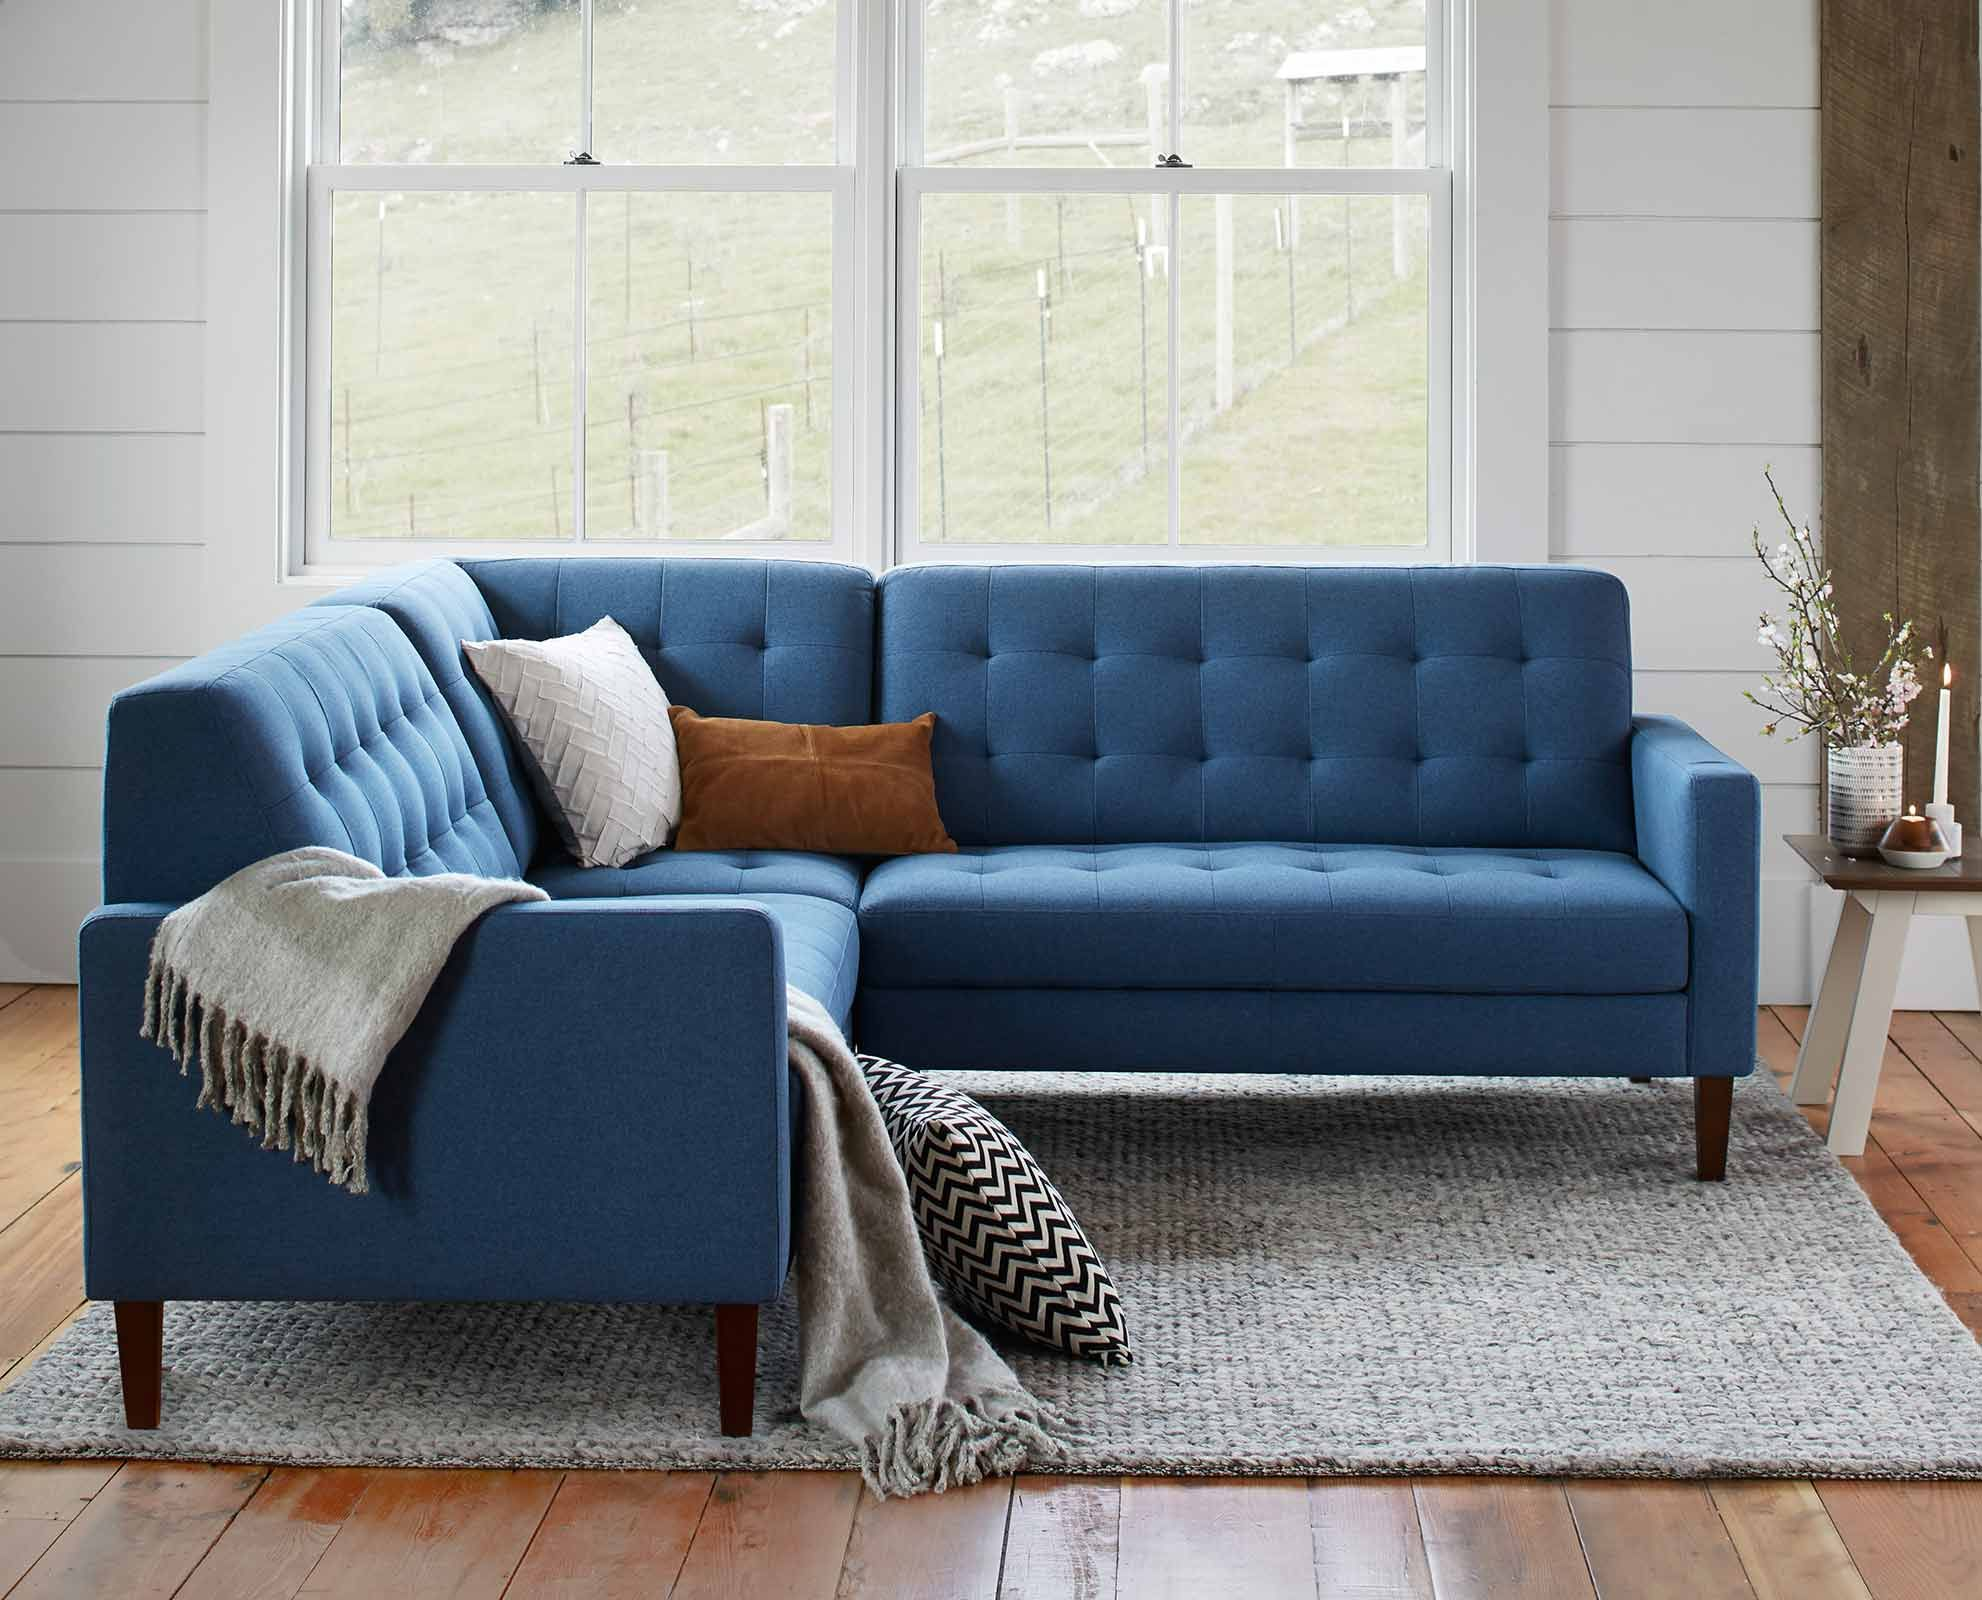 stanley velvet furniture cr located kennedy vintage from gallery set parker sofa showroom and blue sectional royal couch curved in